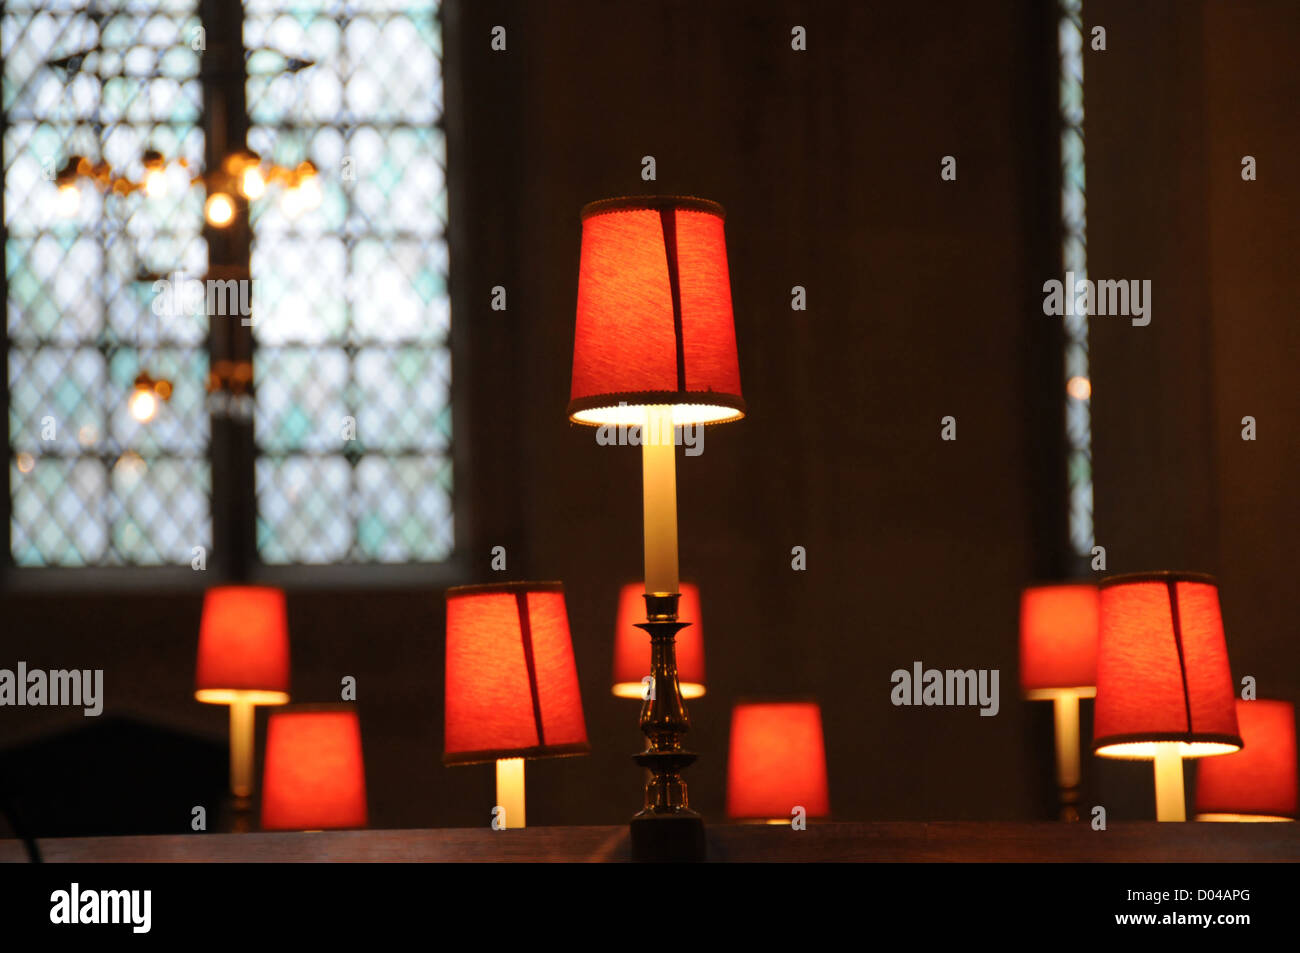 Small orange reading lamps on church pews with leaded window in rear. - Stock Image